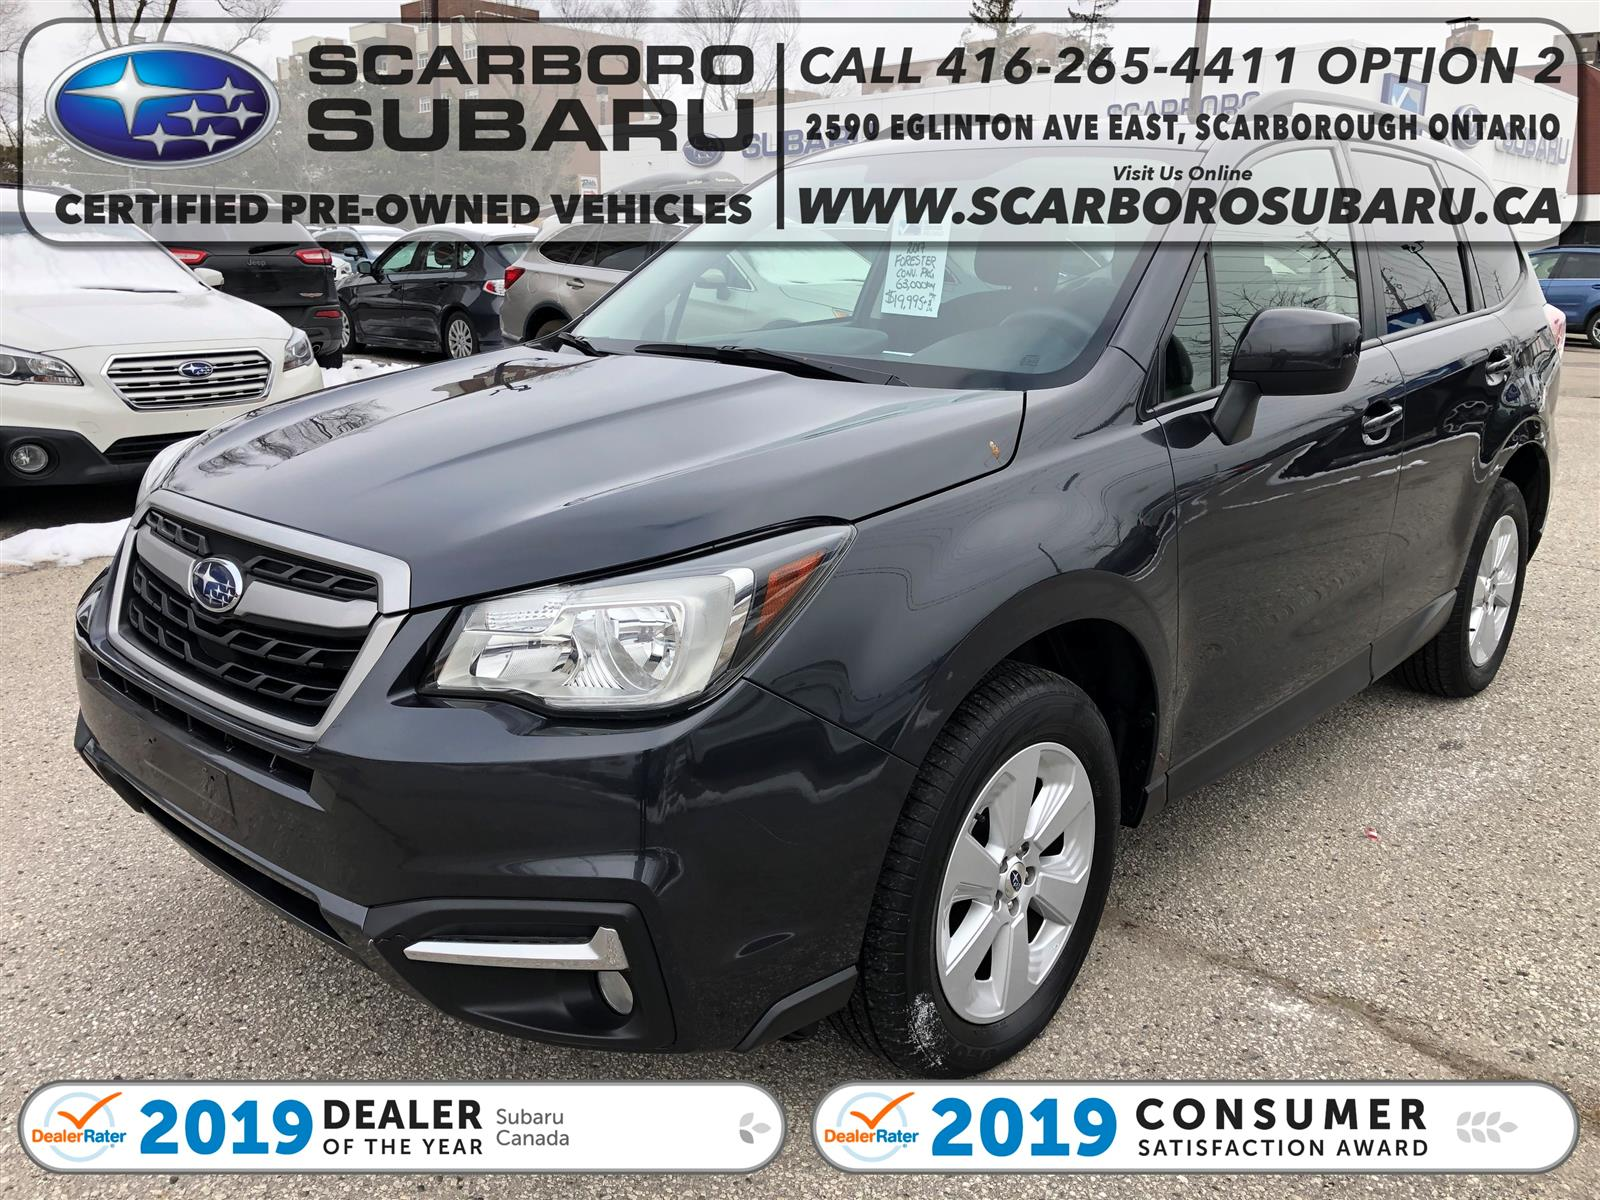 used 2017 Subaru Forester car, priced at $19,995